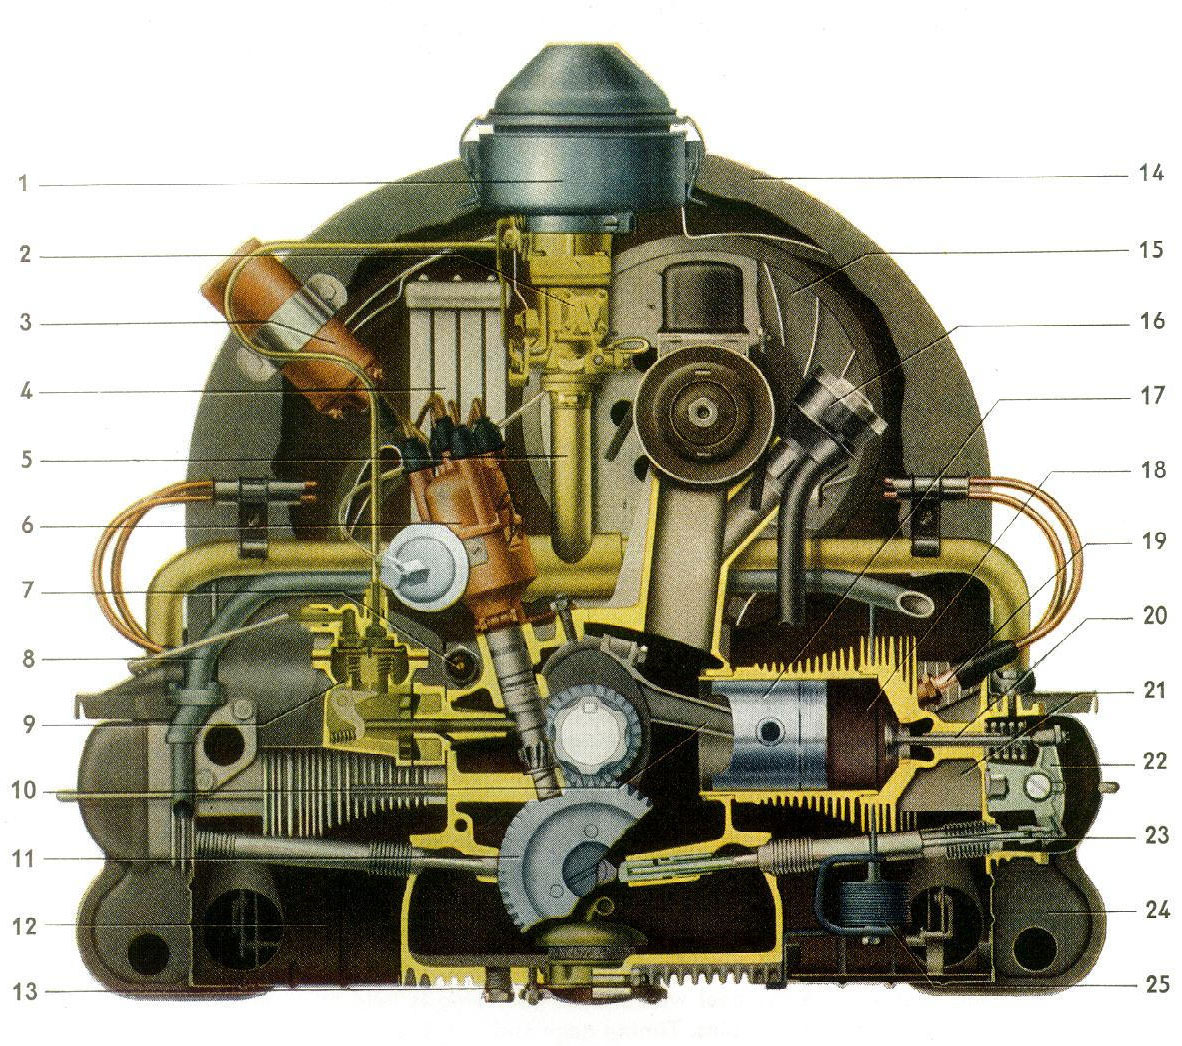 vw 1600 engine diagram - wiring diagram system good-locate-a -  good-locate-a.ediliadesign.it  ediliadesign.it